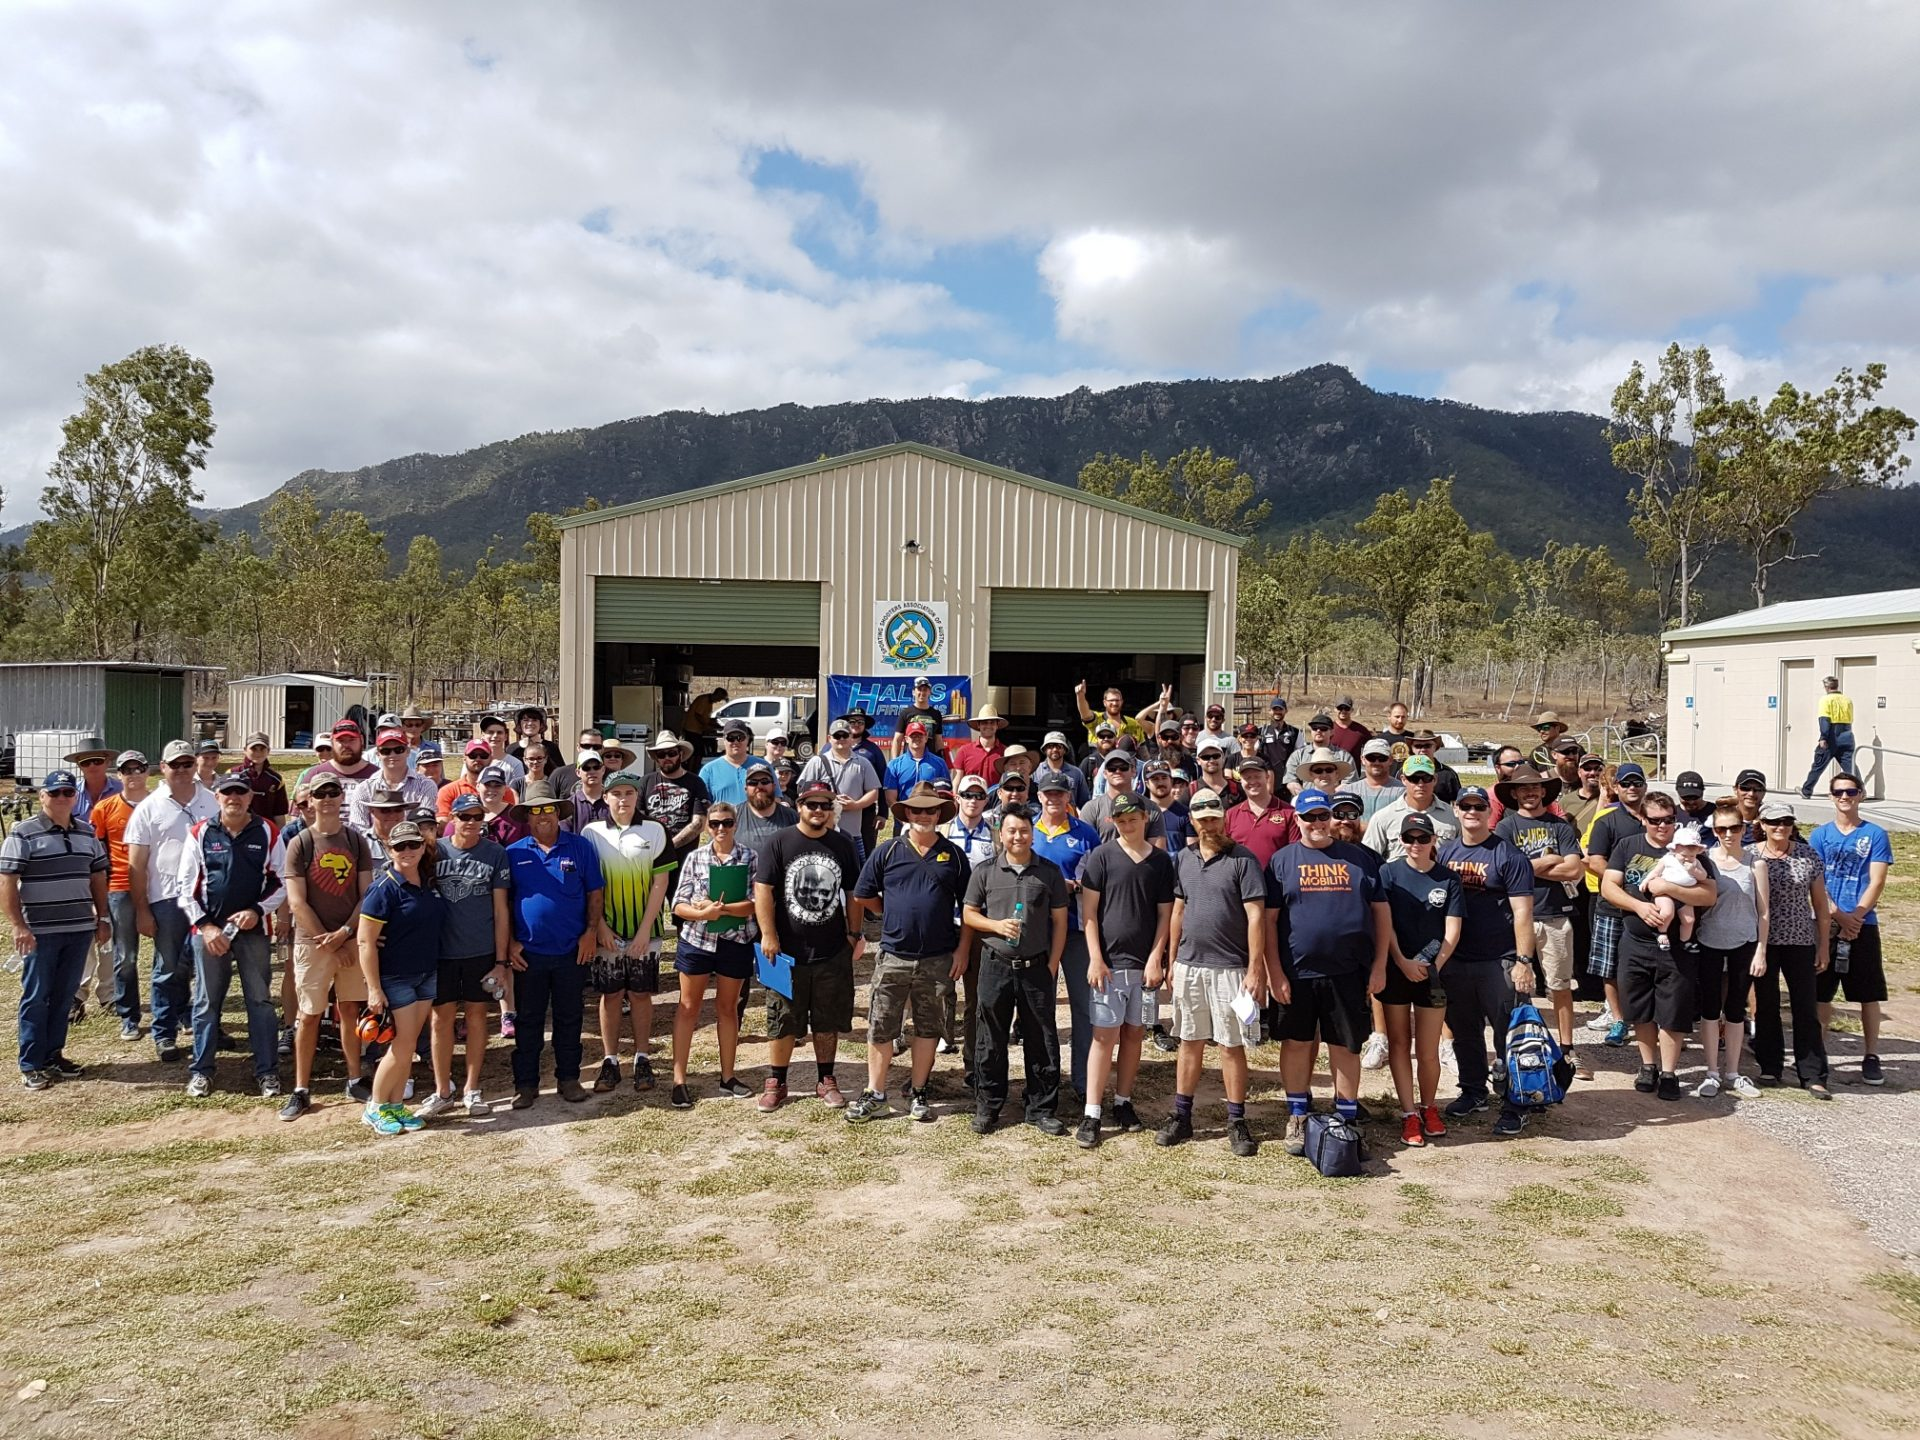 Shooters in the Community – Townsville Shoot for a Cause